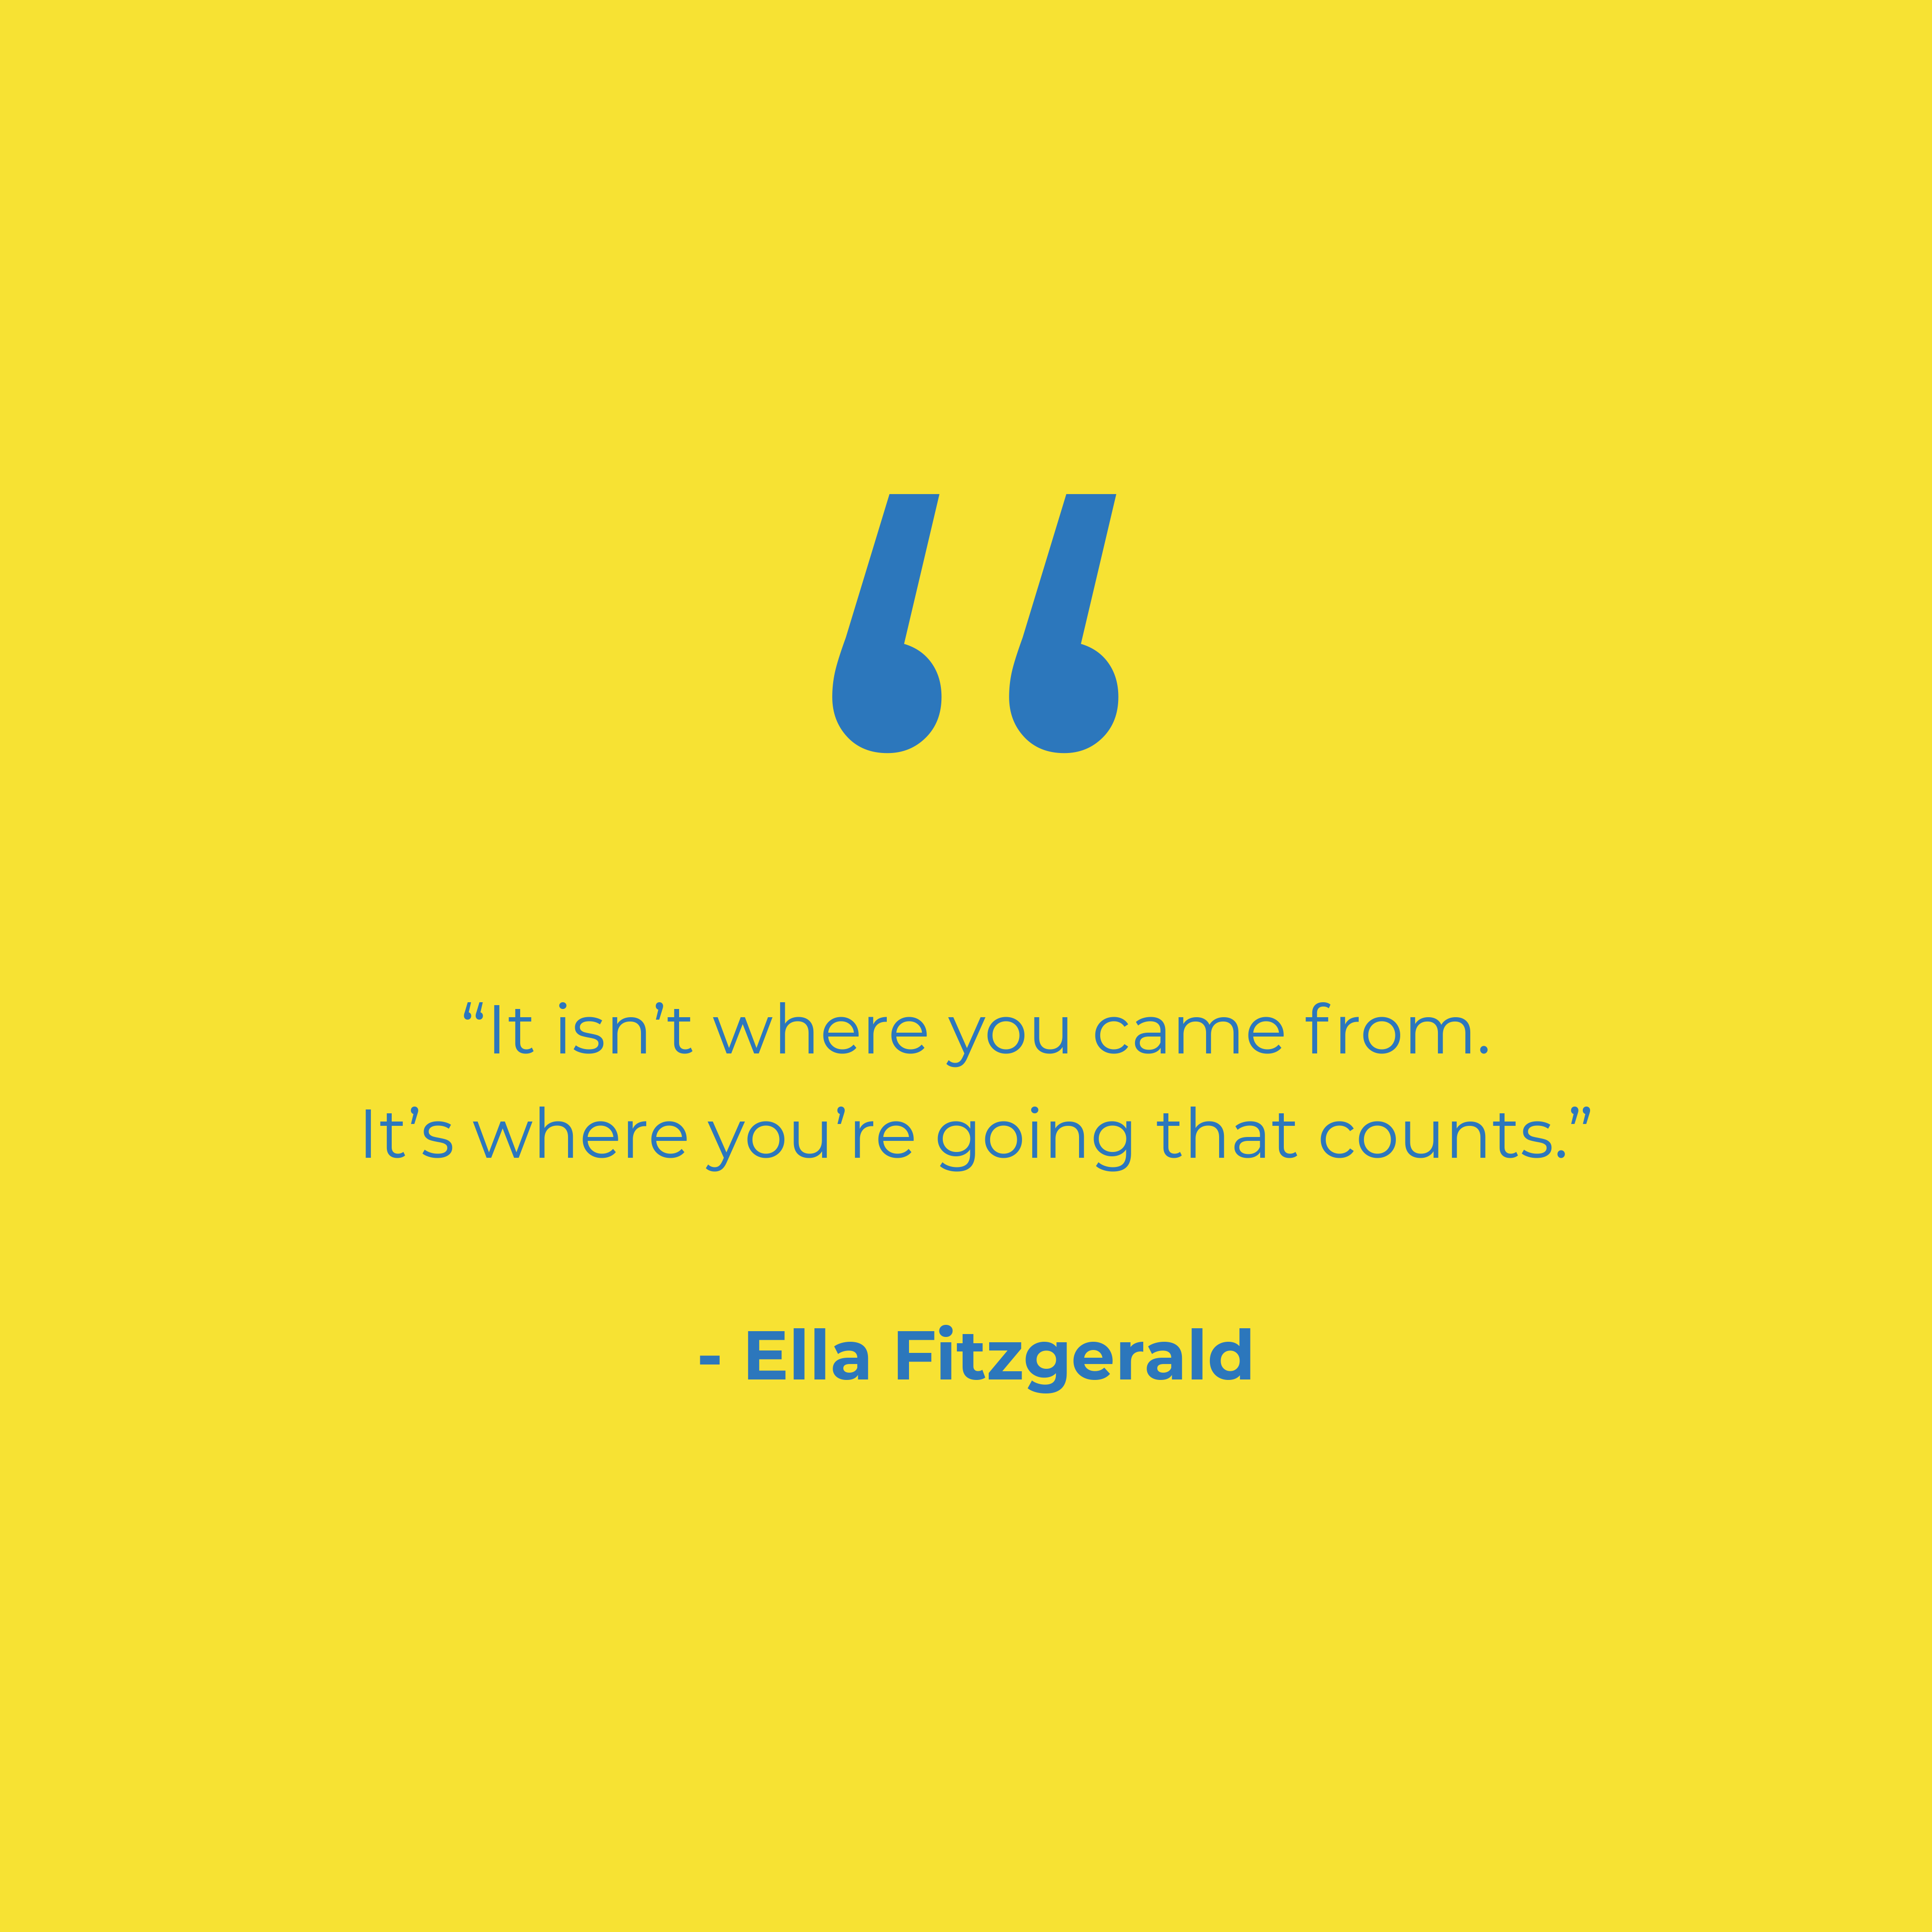 It isn't where you came from, it's where you're going that counts.